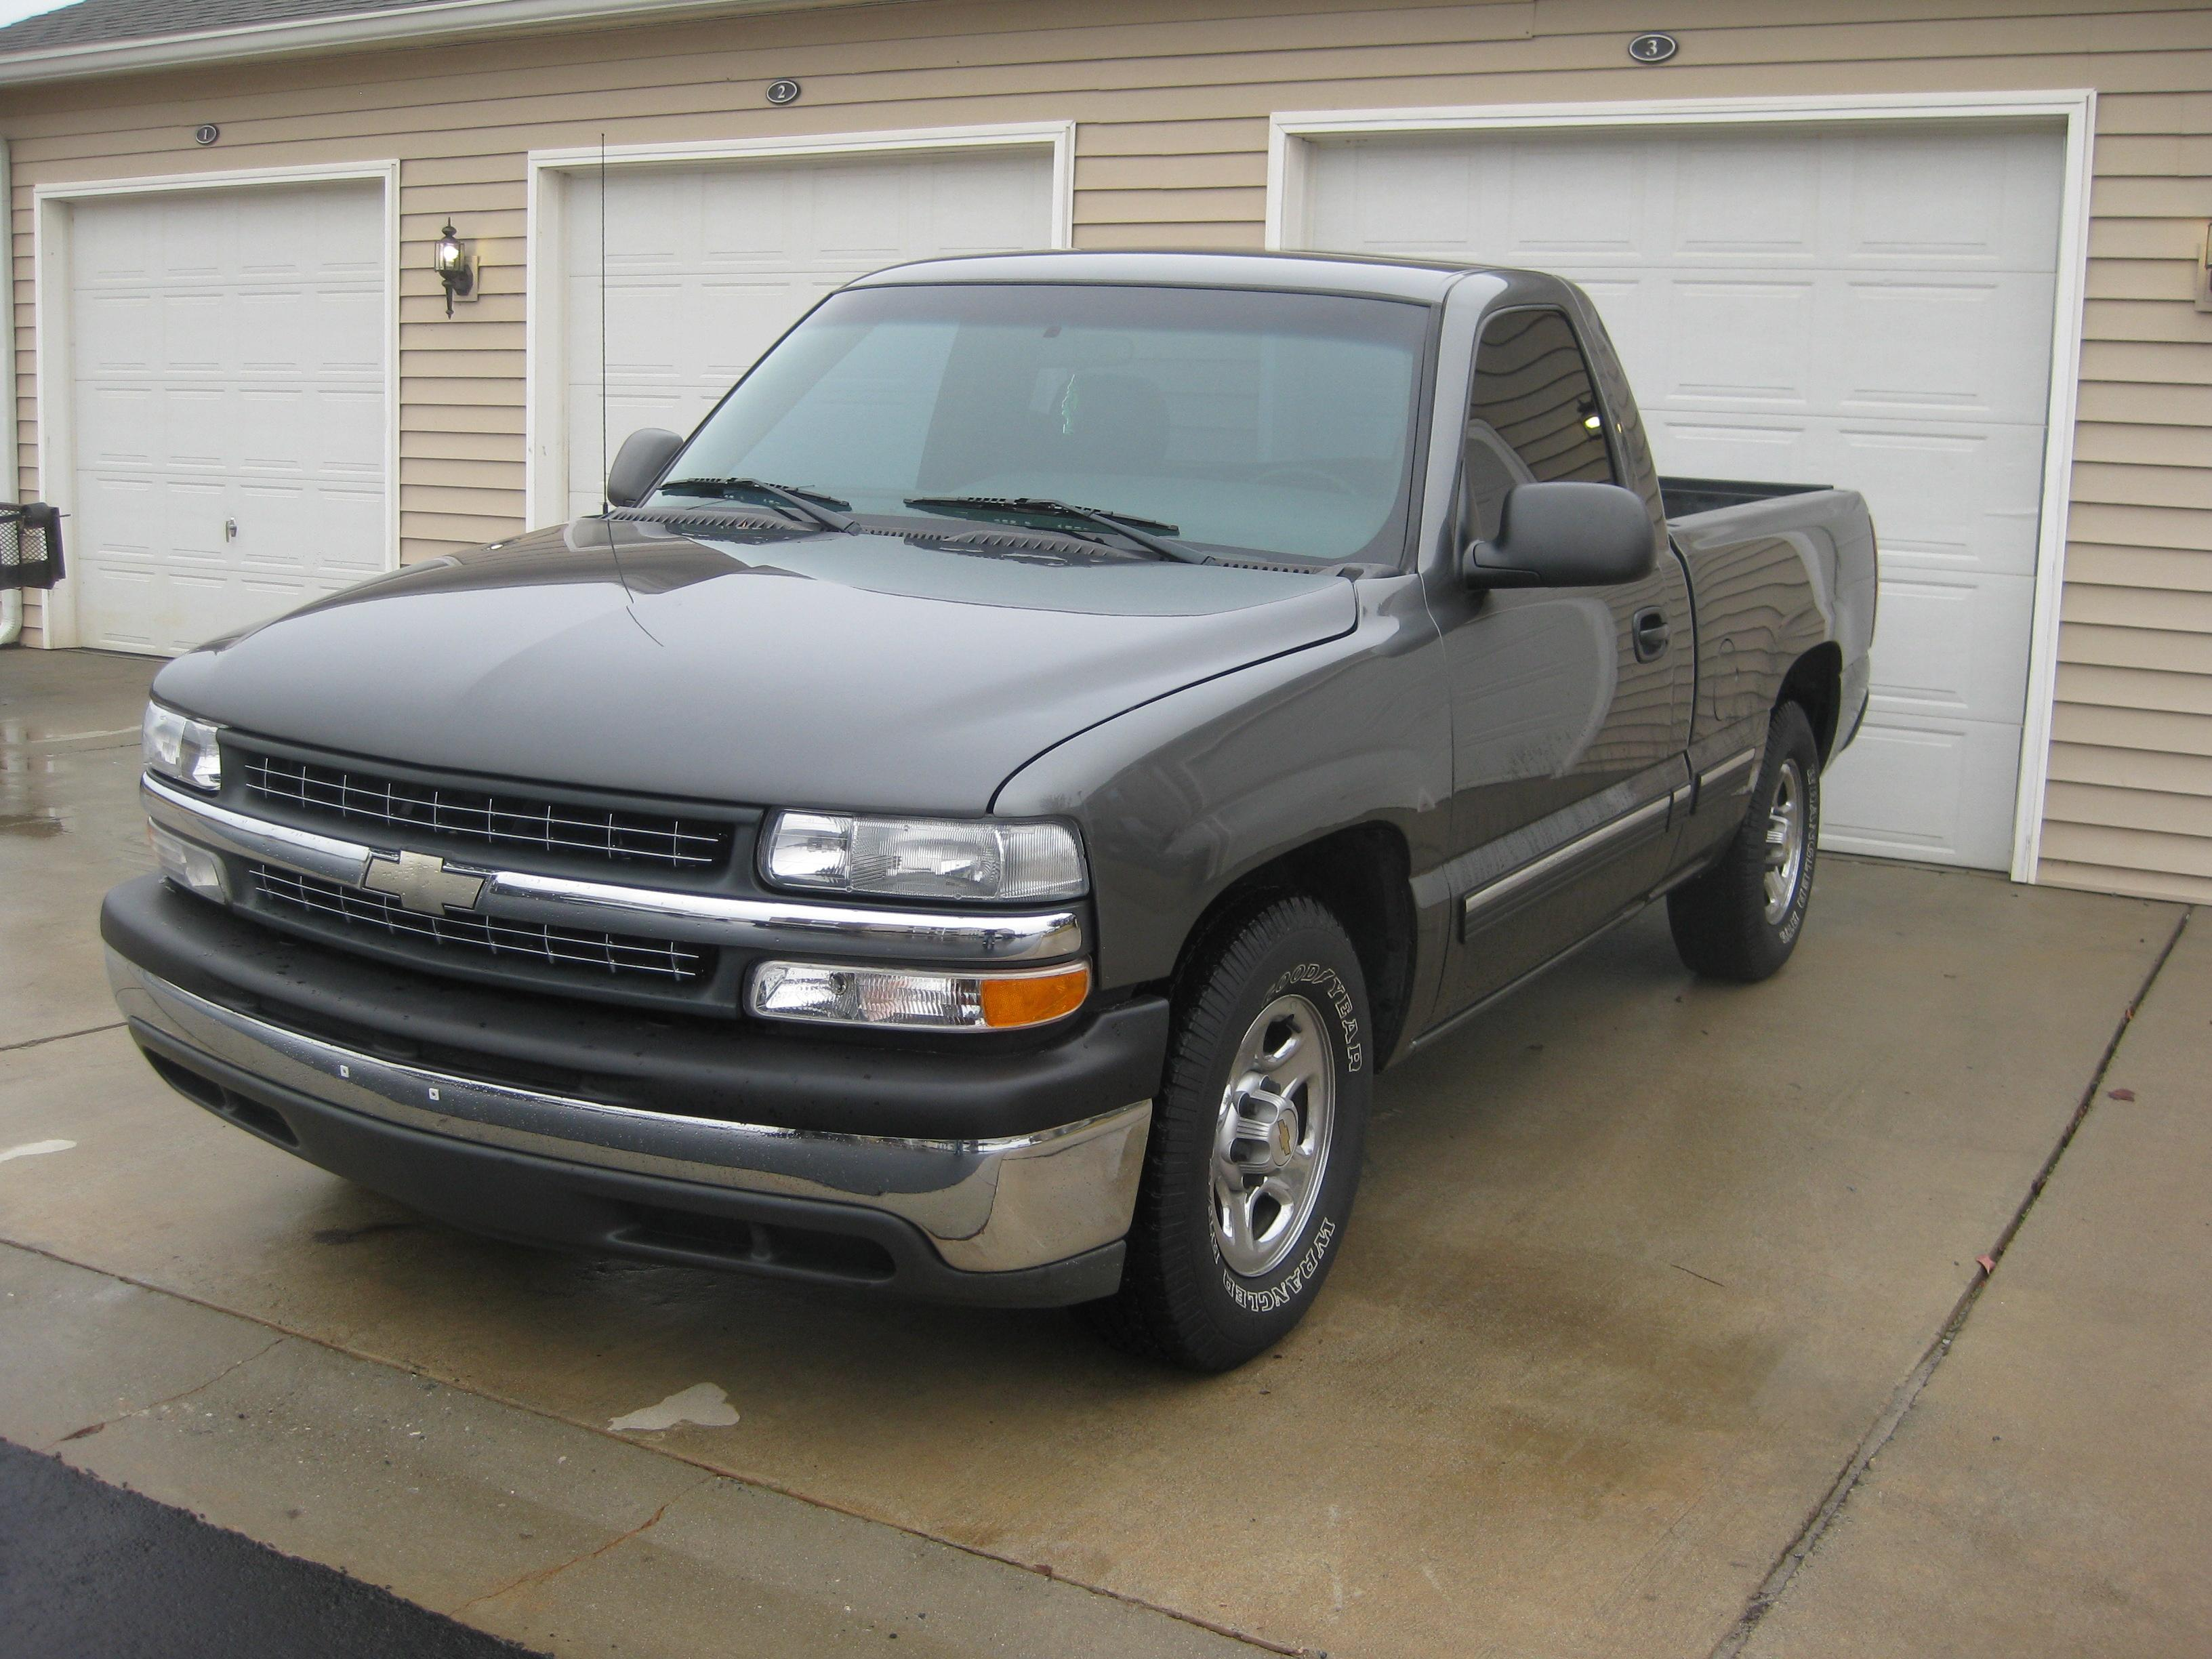 chevyonlexanis 2002 Chevrolet Silverado 1500 Regular Cab 14159289